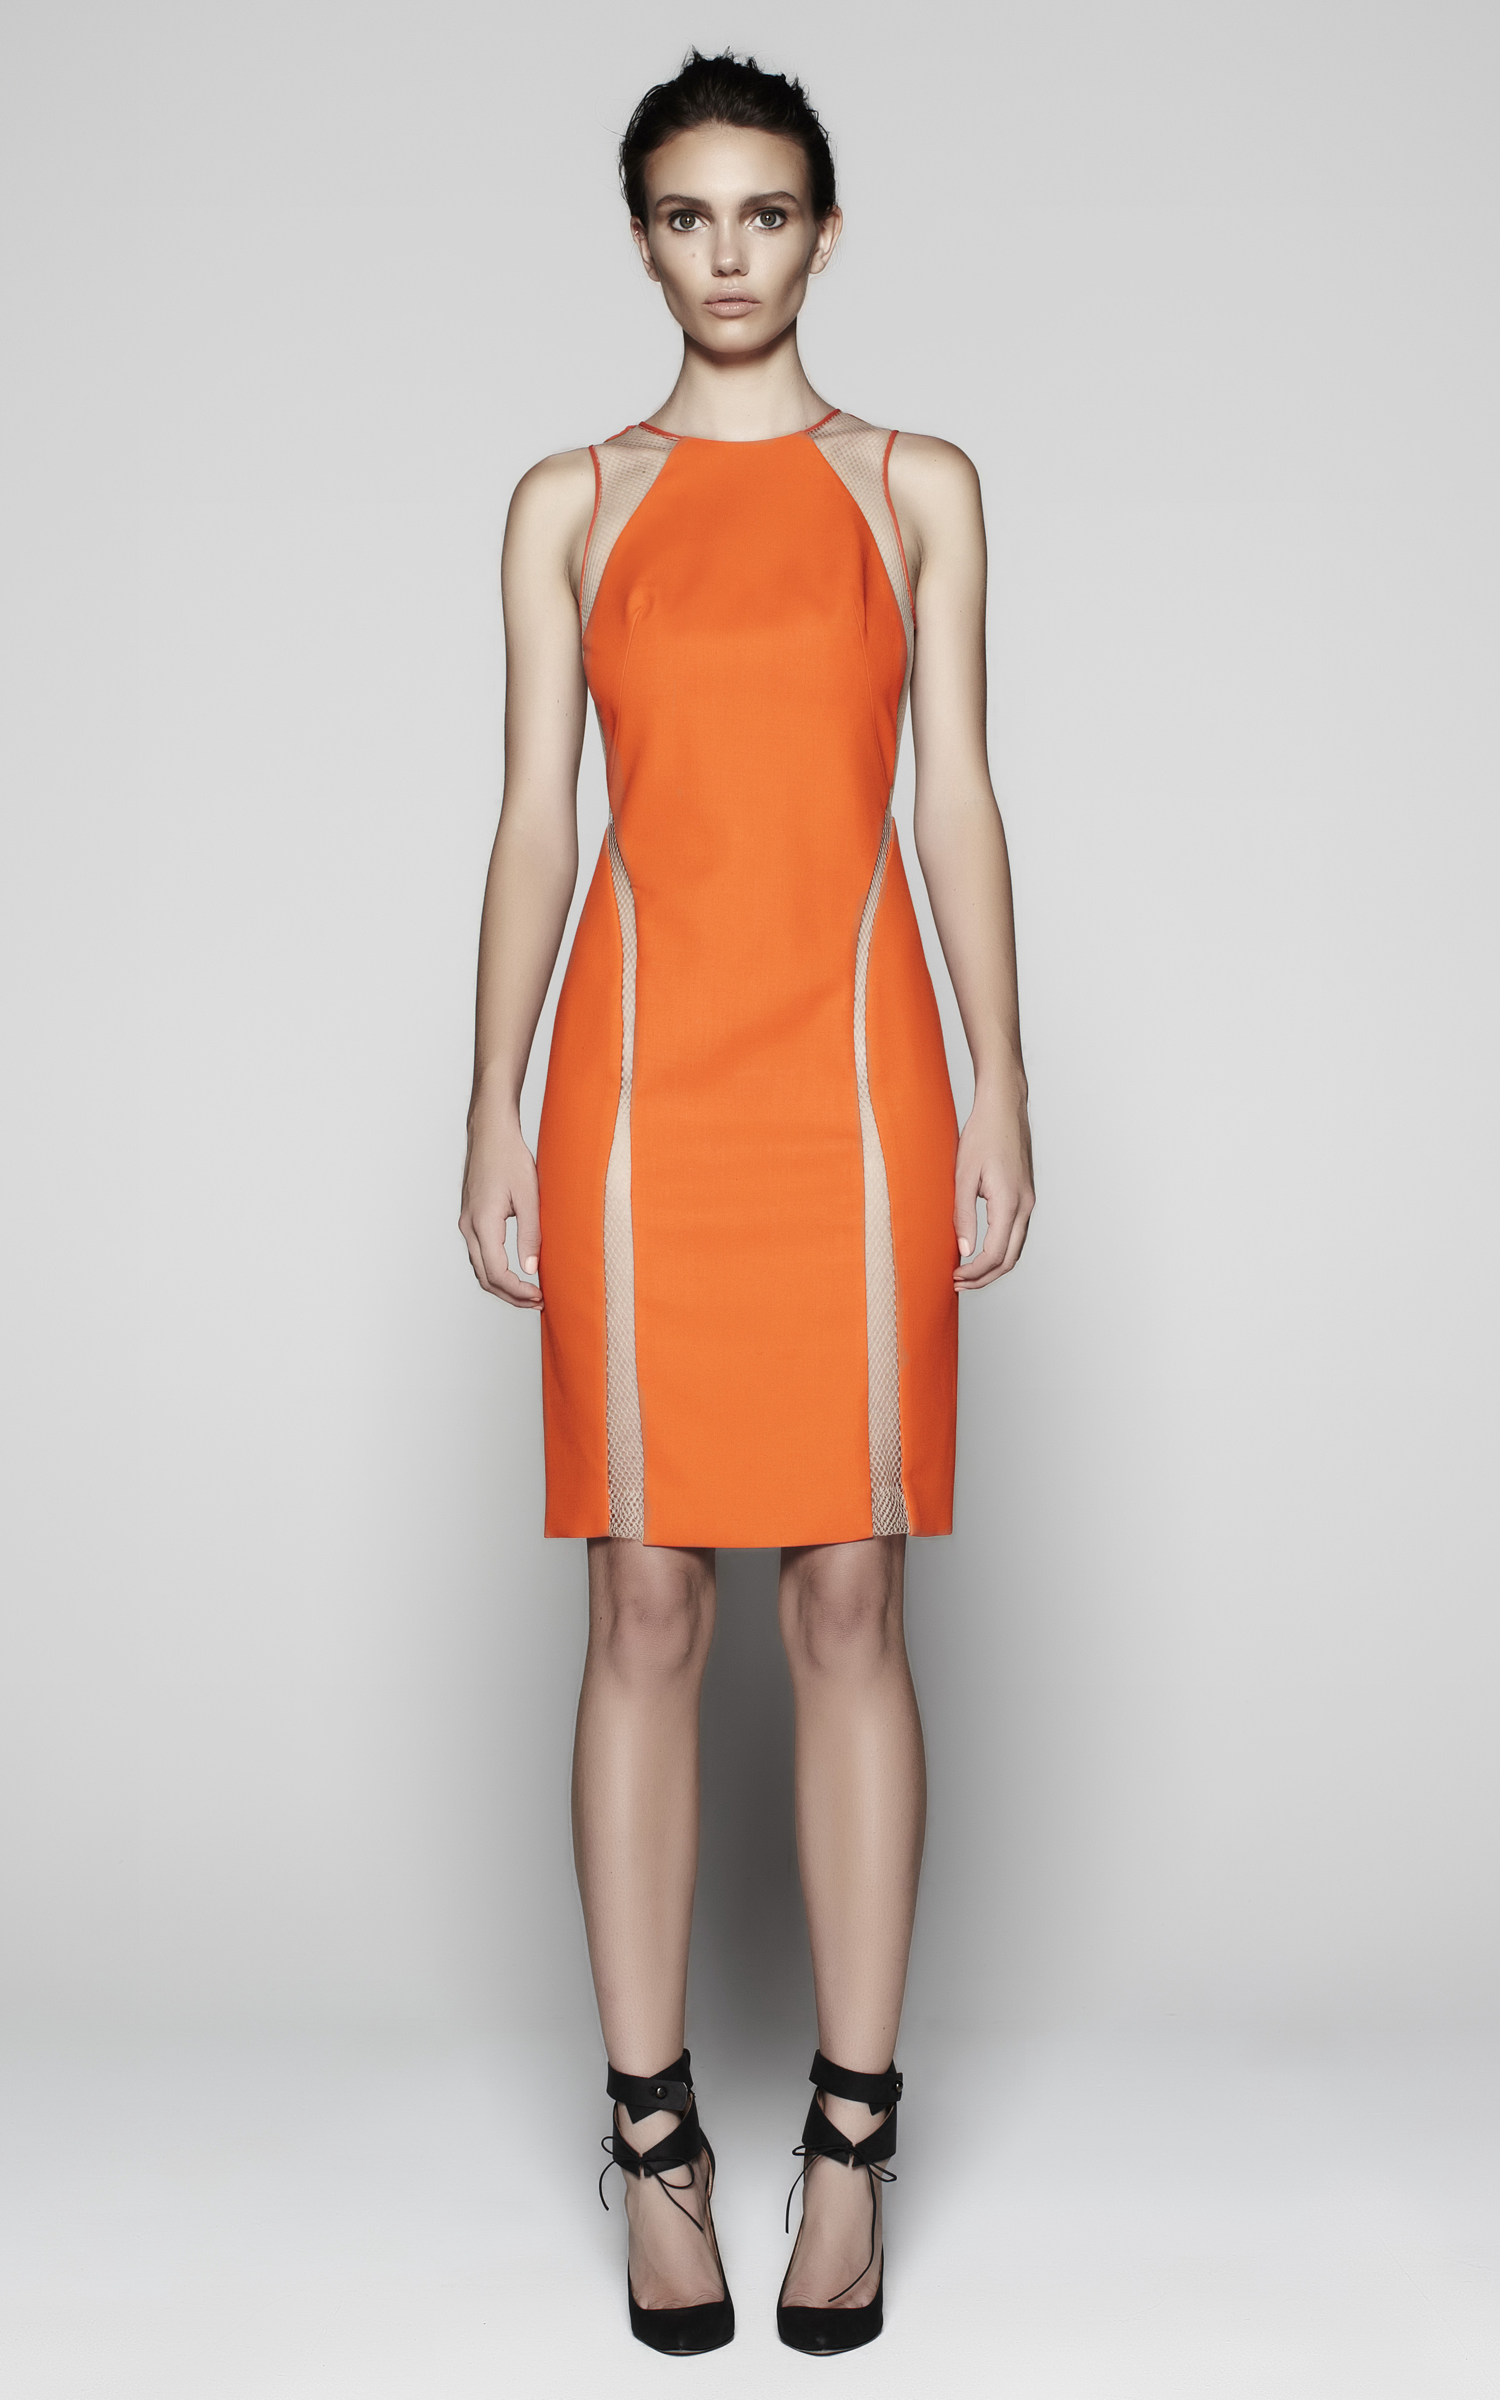 Designapplause Suspended Sleeveless Dress Dion Lee